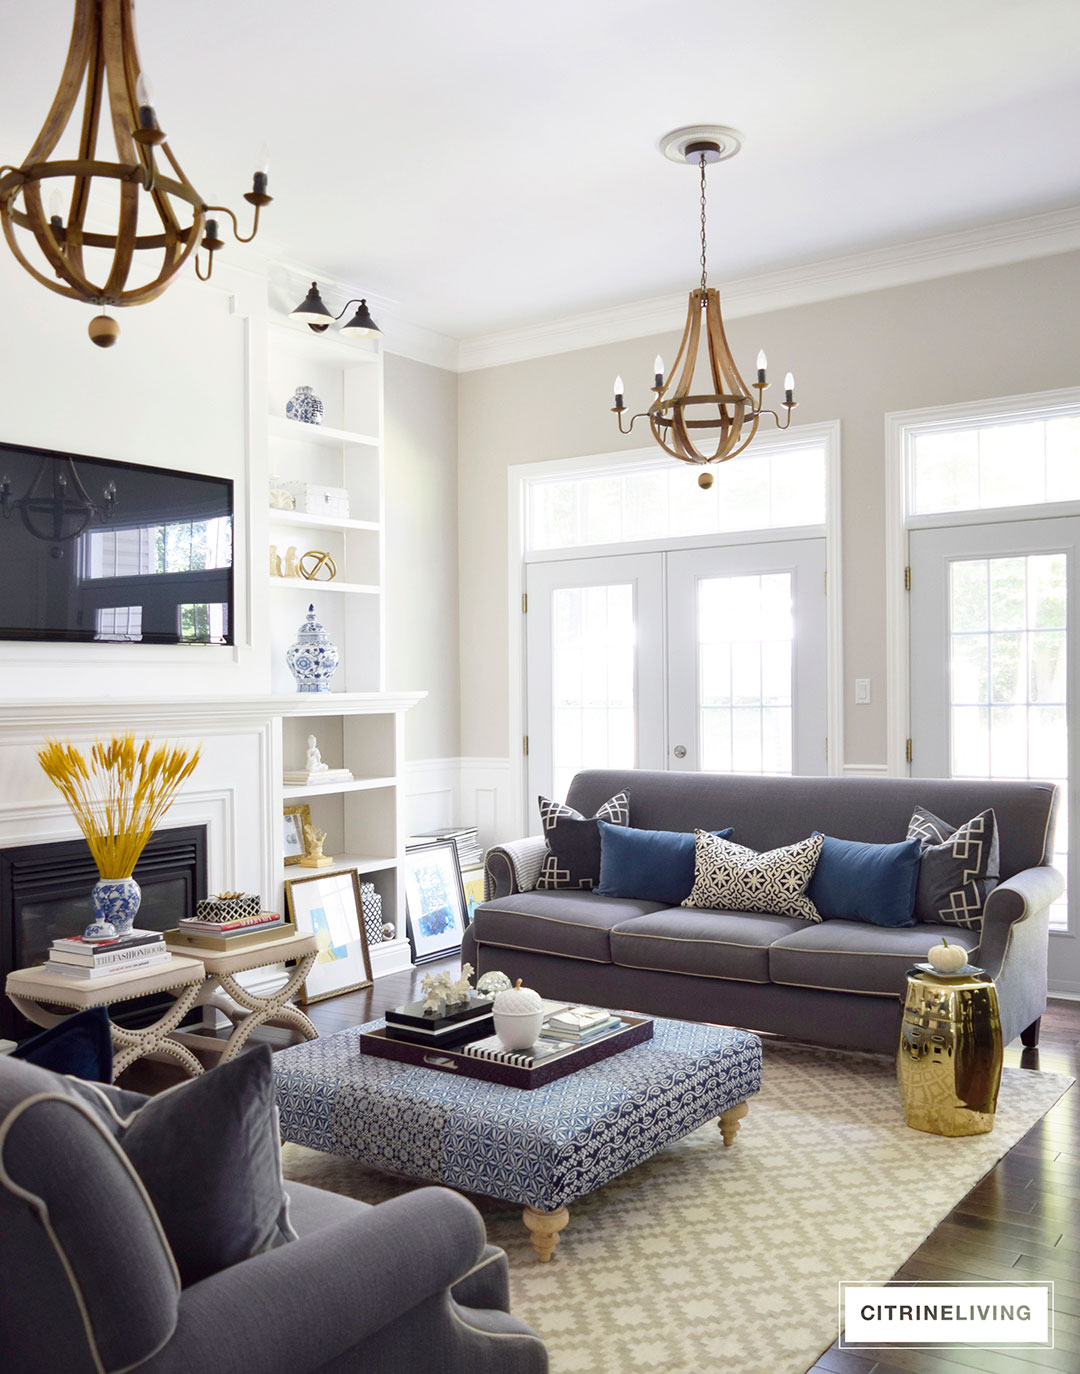 Living room decorated with rich hues of blue, gold and yellow, paired with blue and white for Fall.